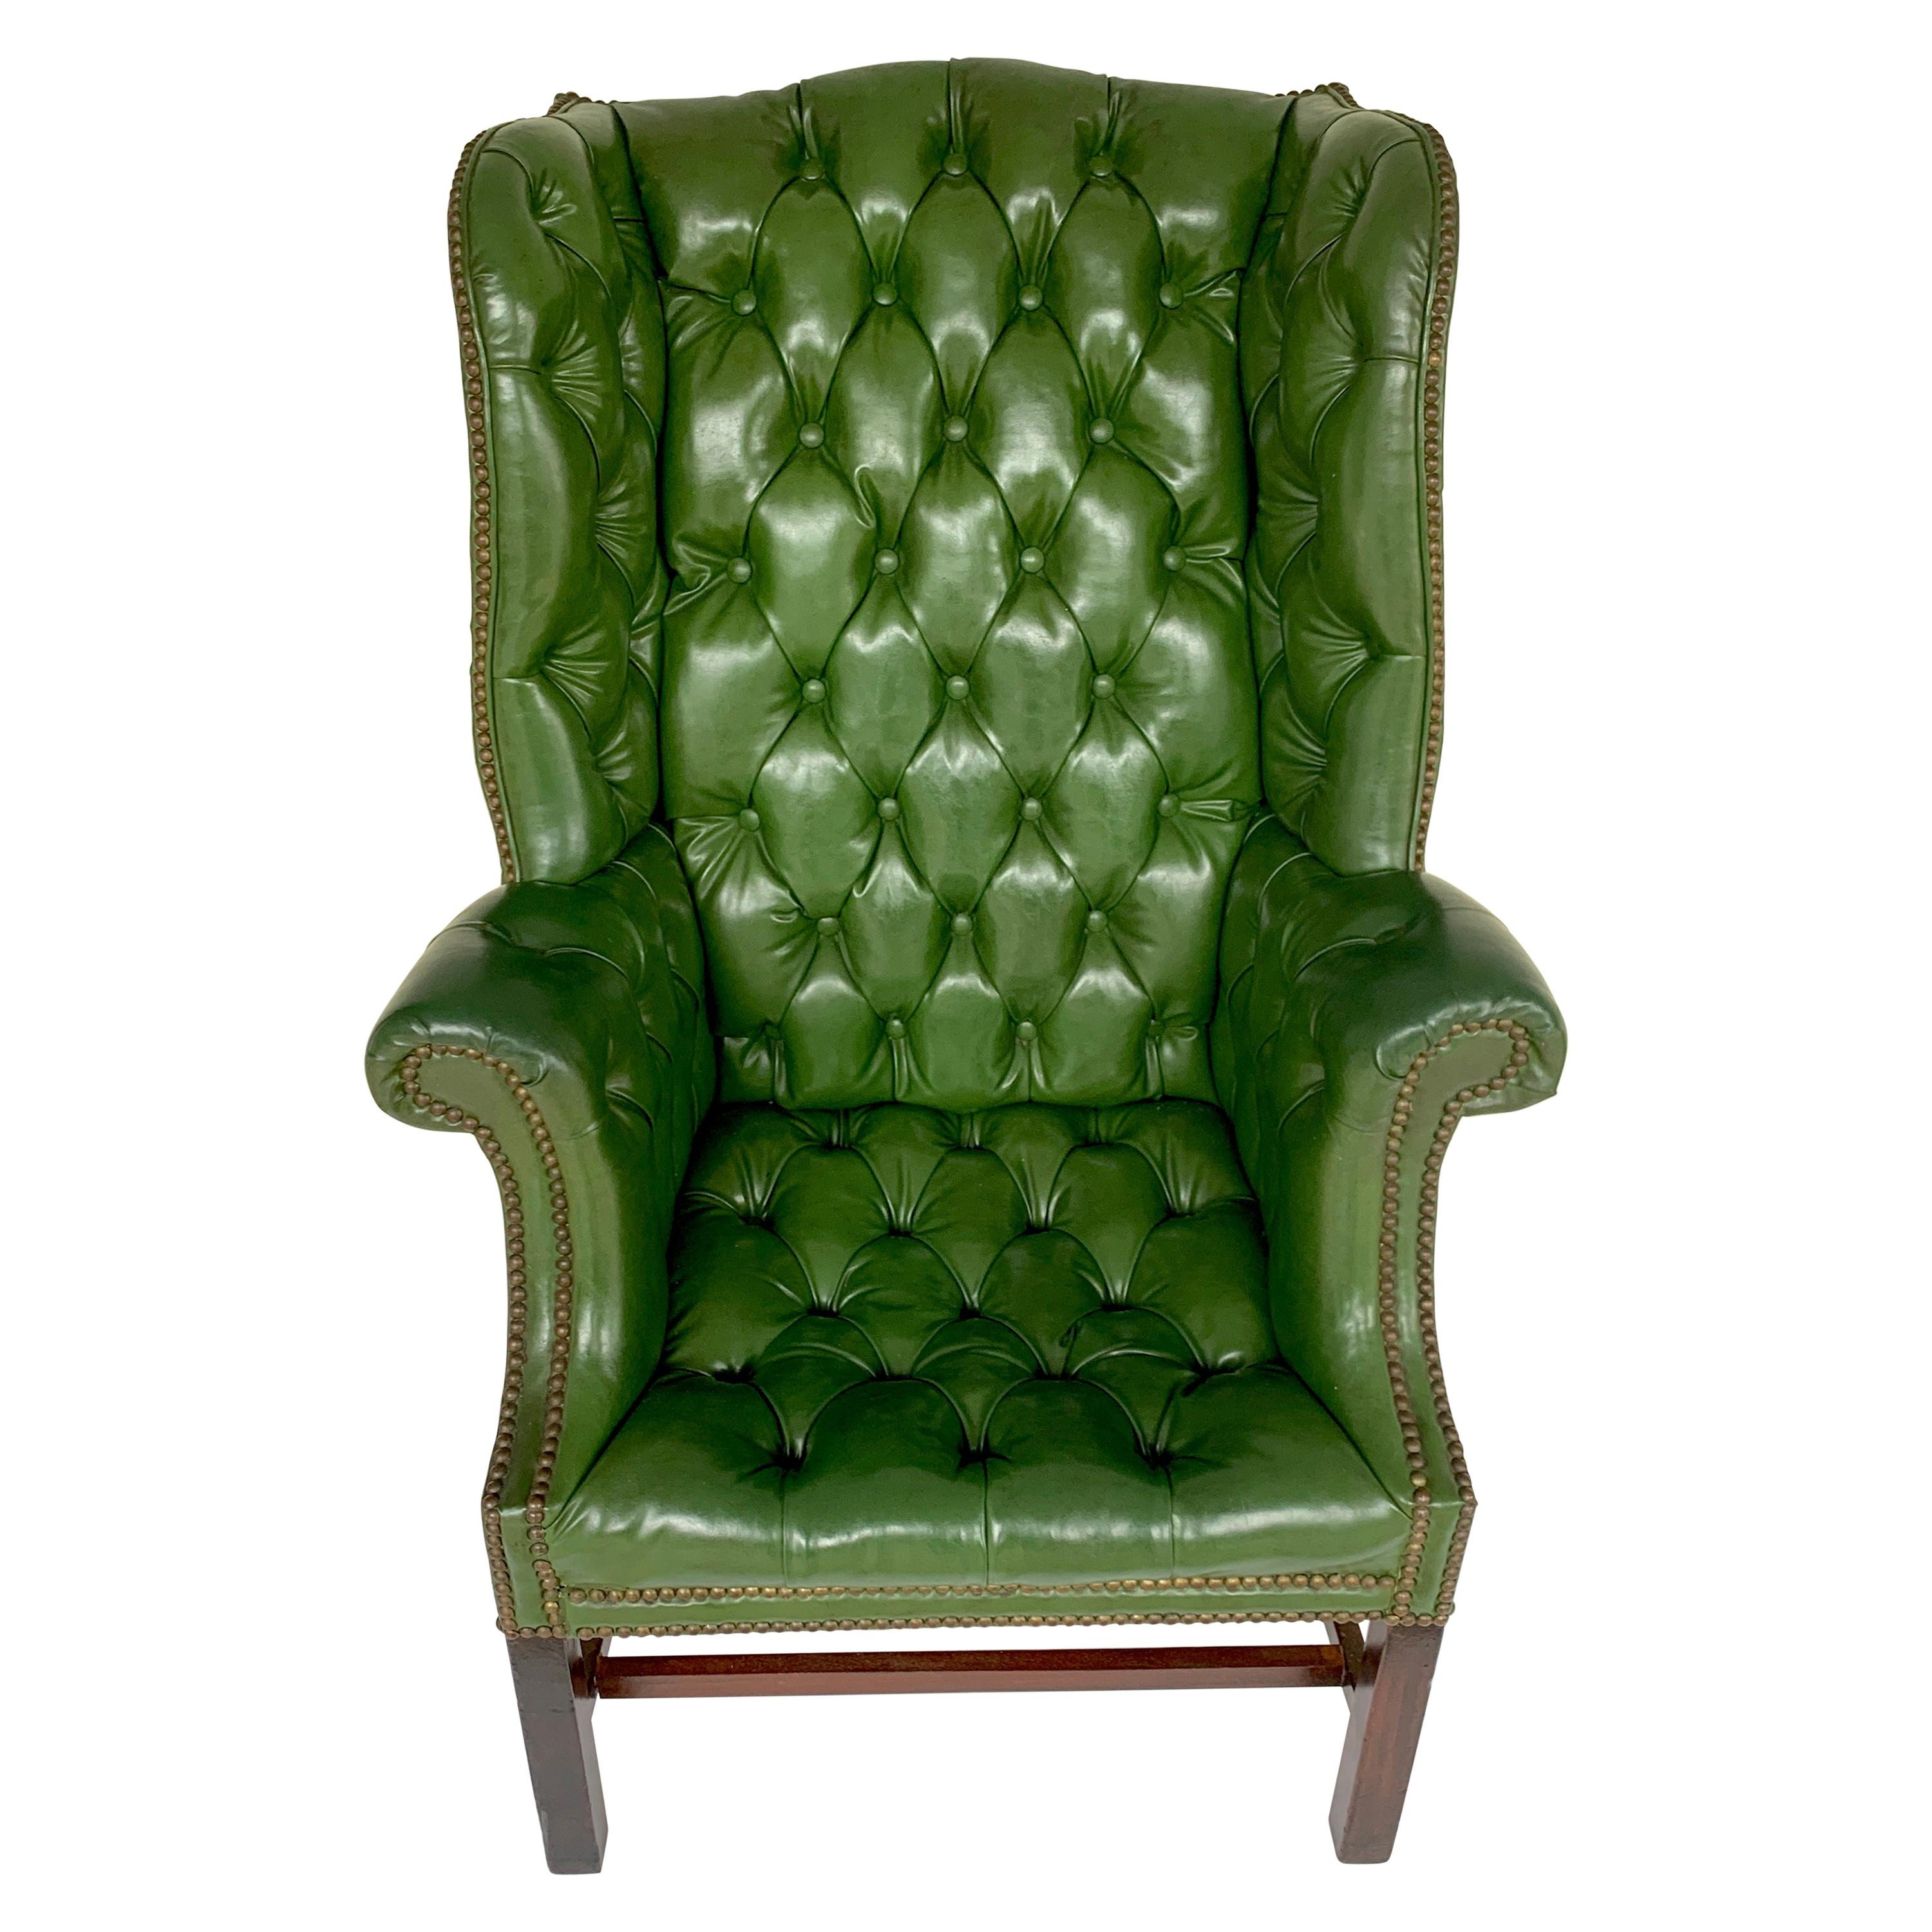 Exquisite George III Mahogany Green Leather Chesterfield Wing Chair